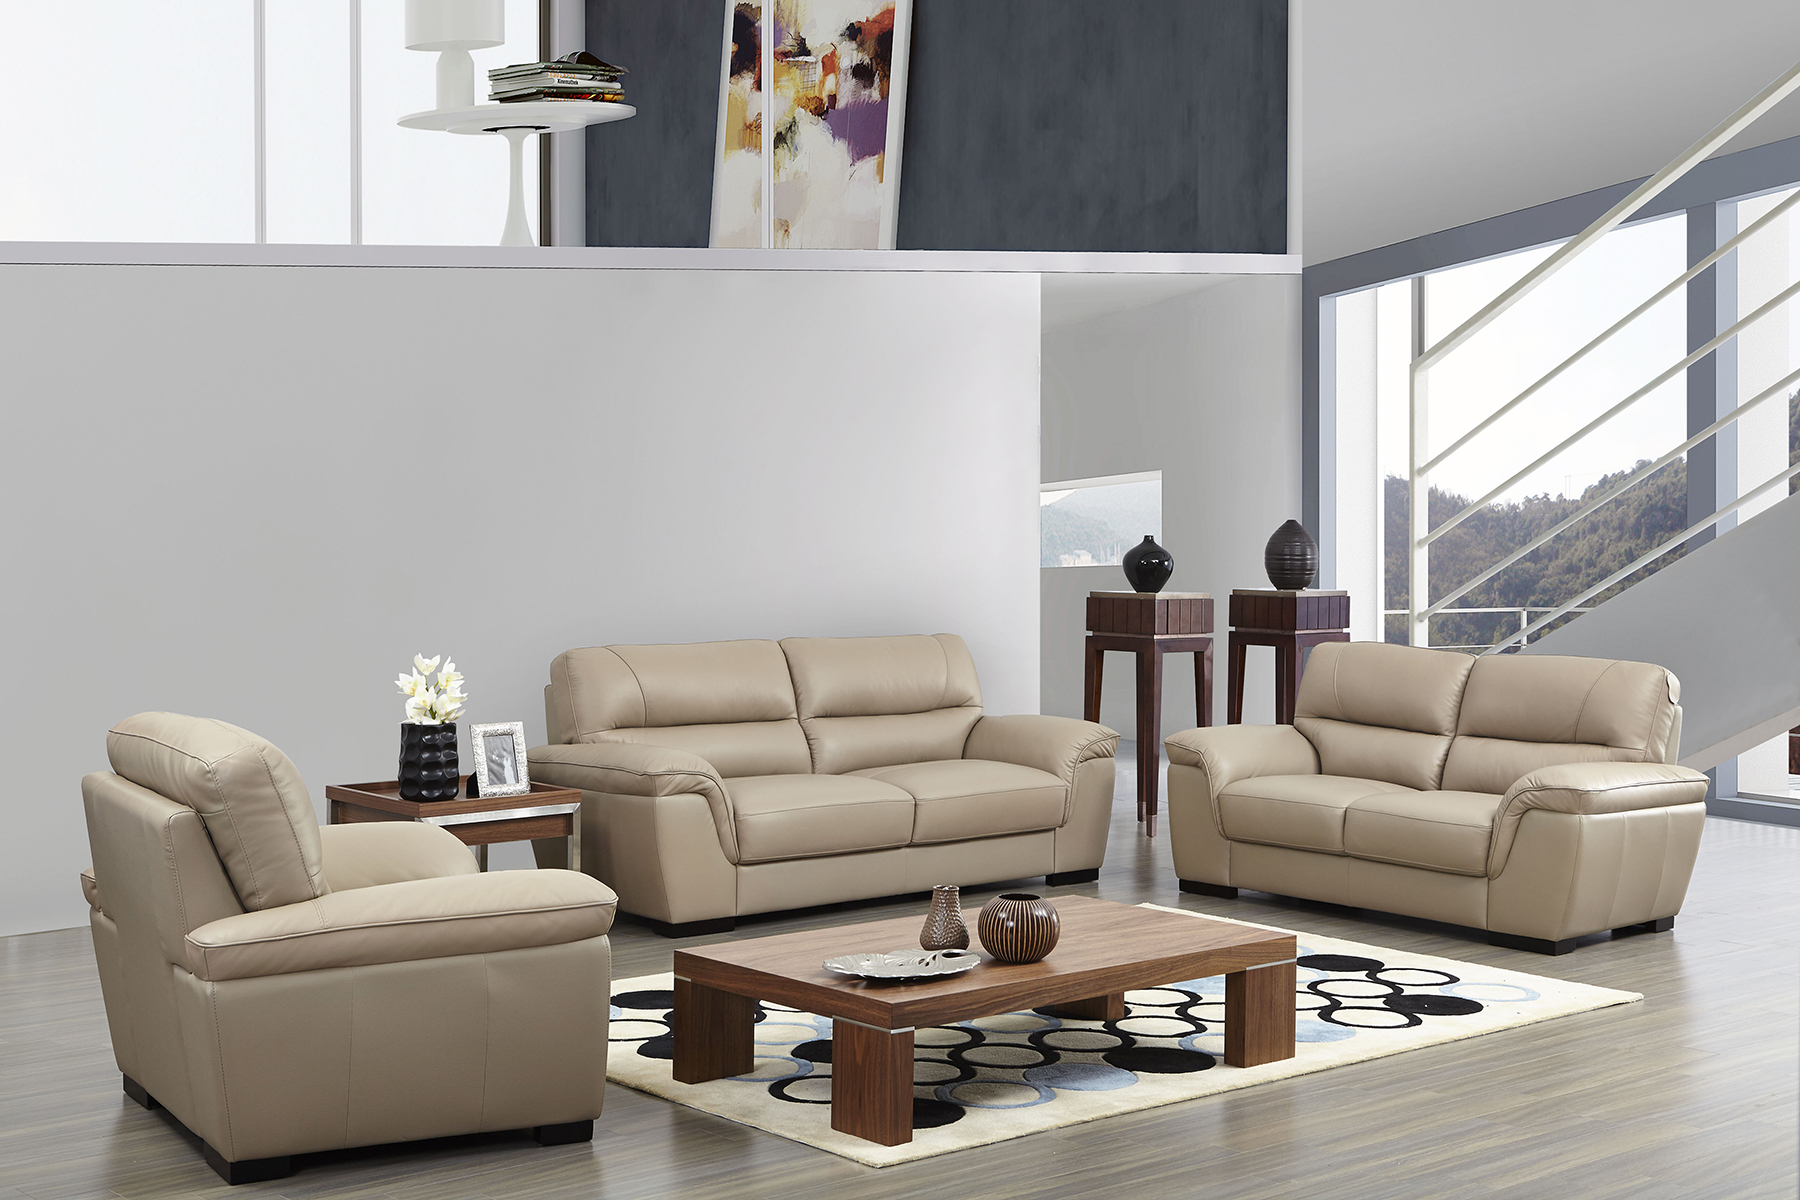 High Quality Dining Room Tables Contemporary Beige Leather Stylish Sofa Set With Wooden